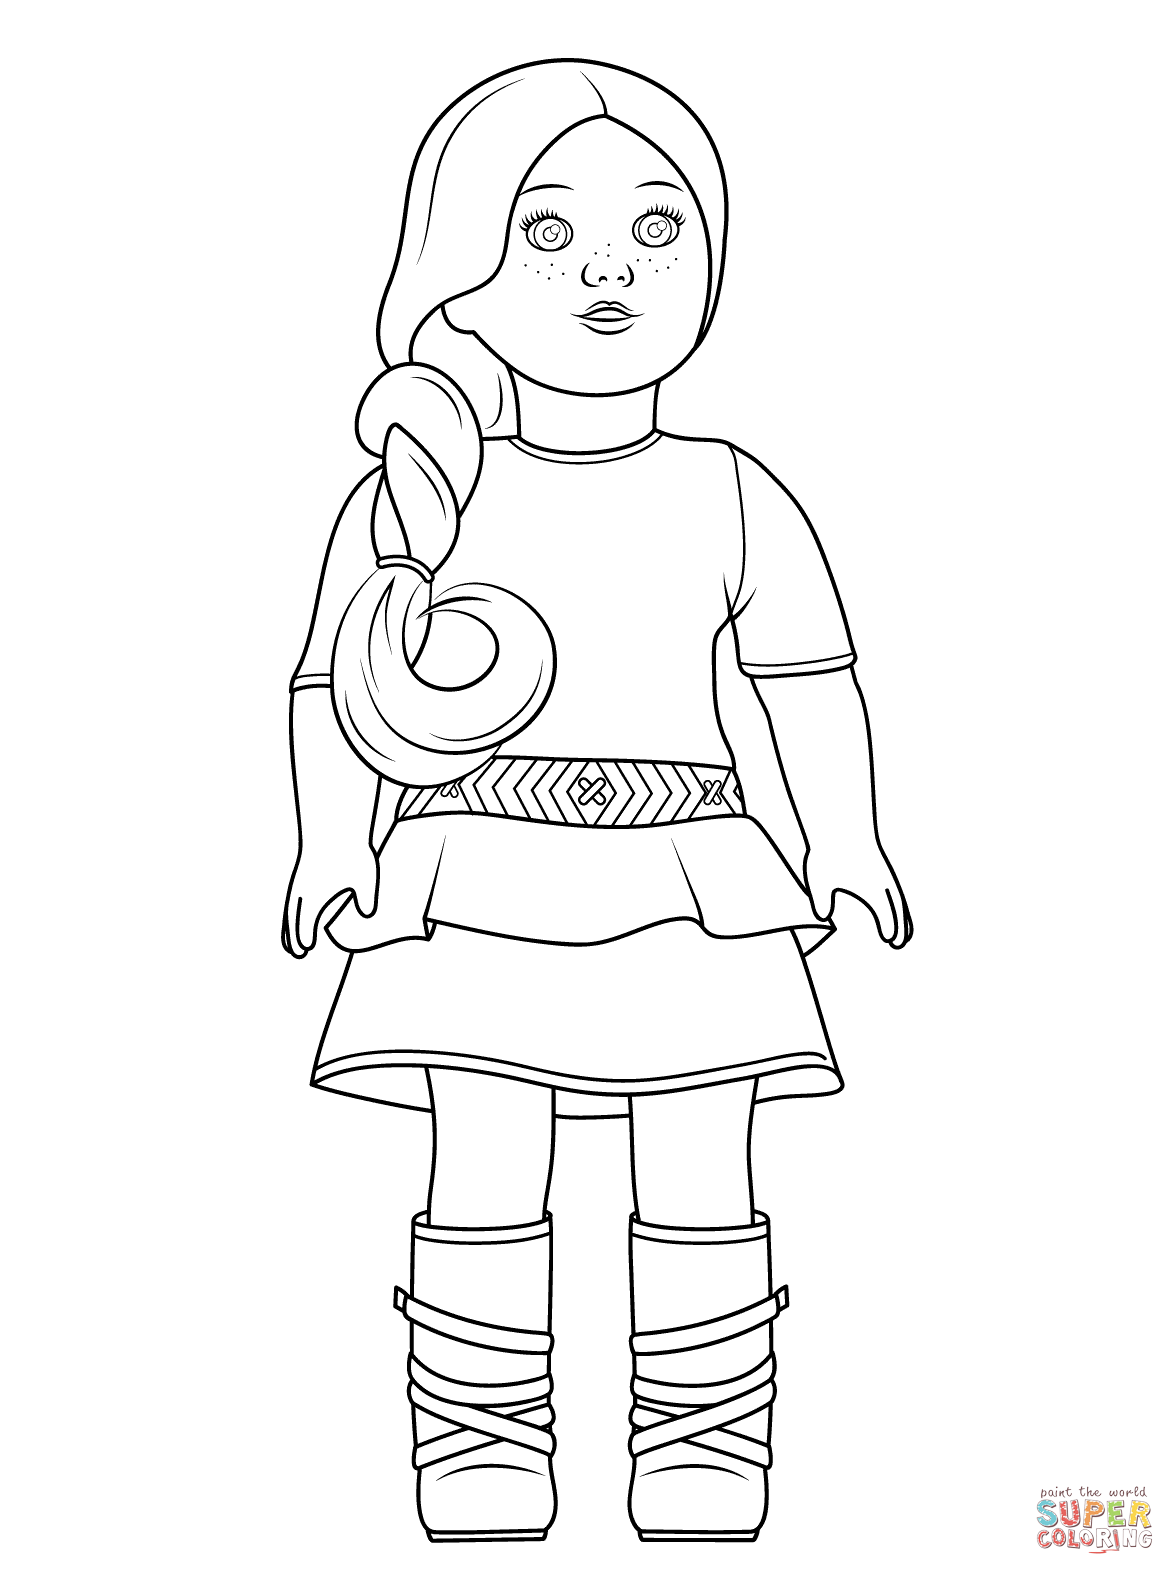 Julie american girl doll clipart at school clip freeuse library American Girl Saige coloring page | Free Printable Coloring Pages clip freeuse library